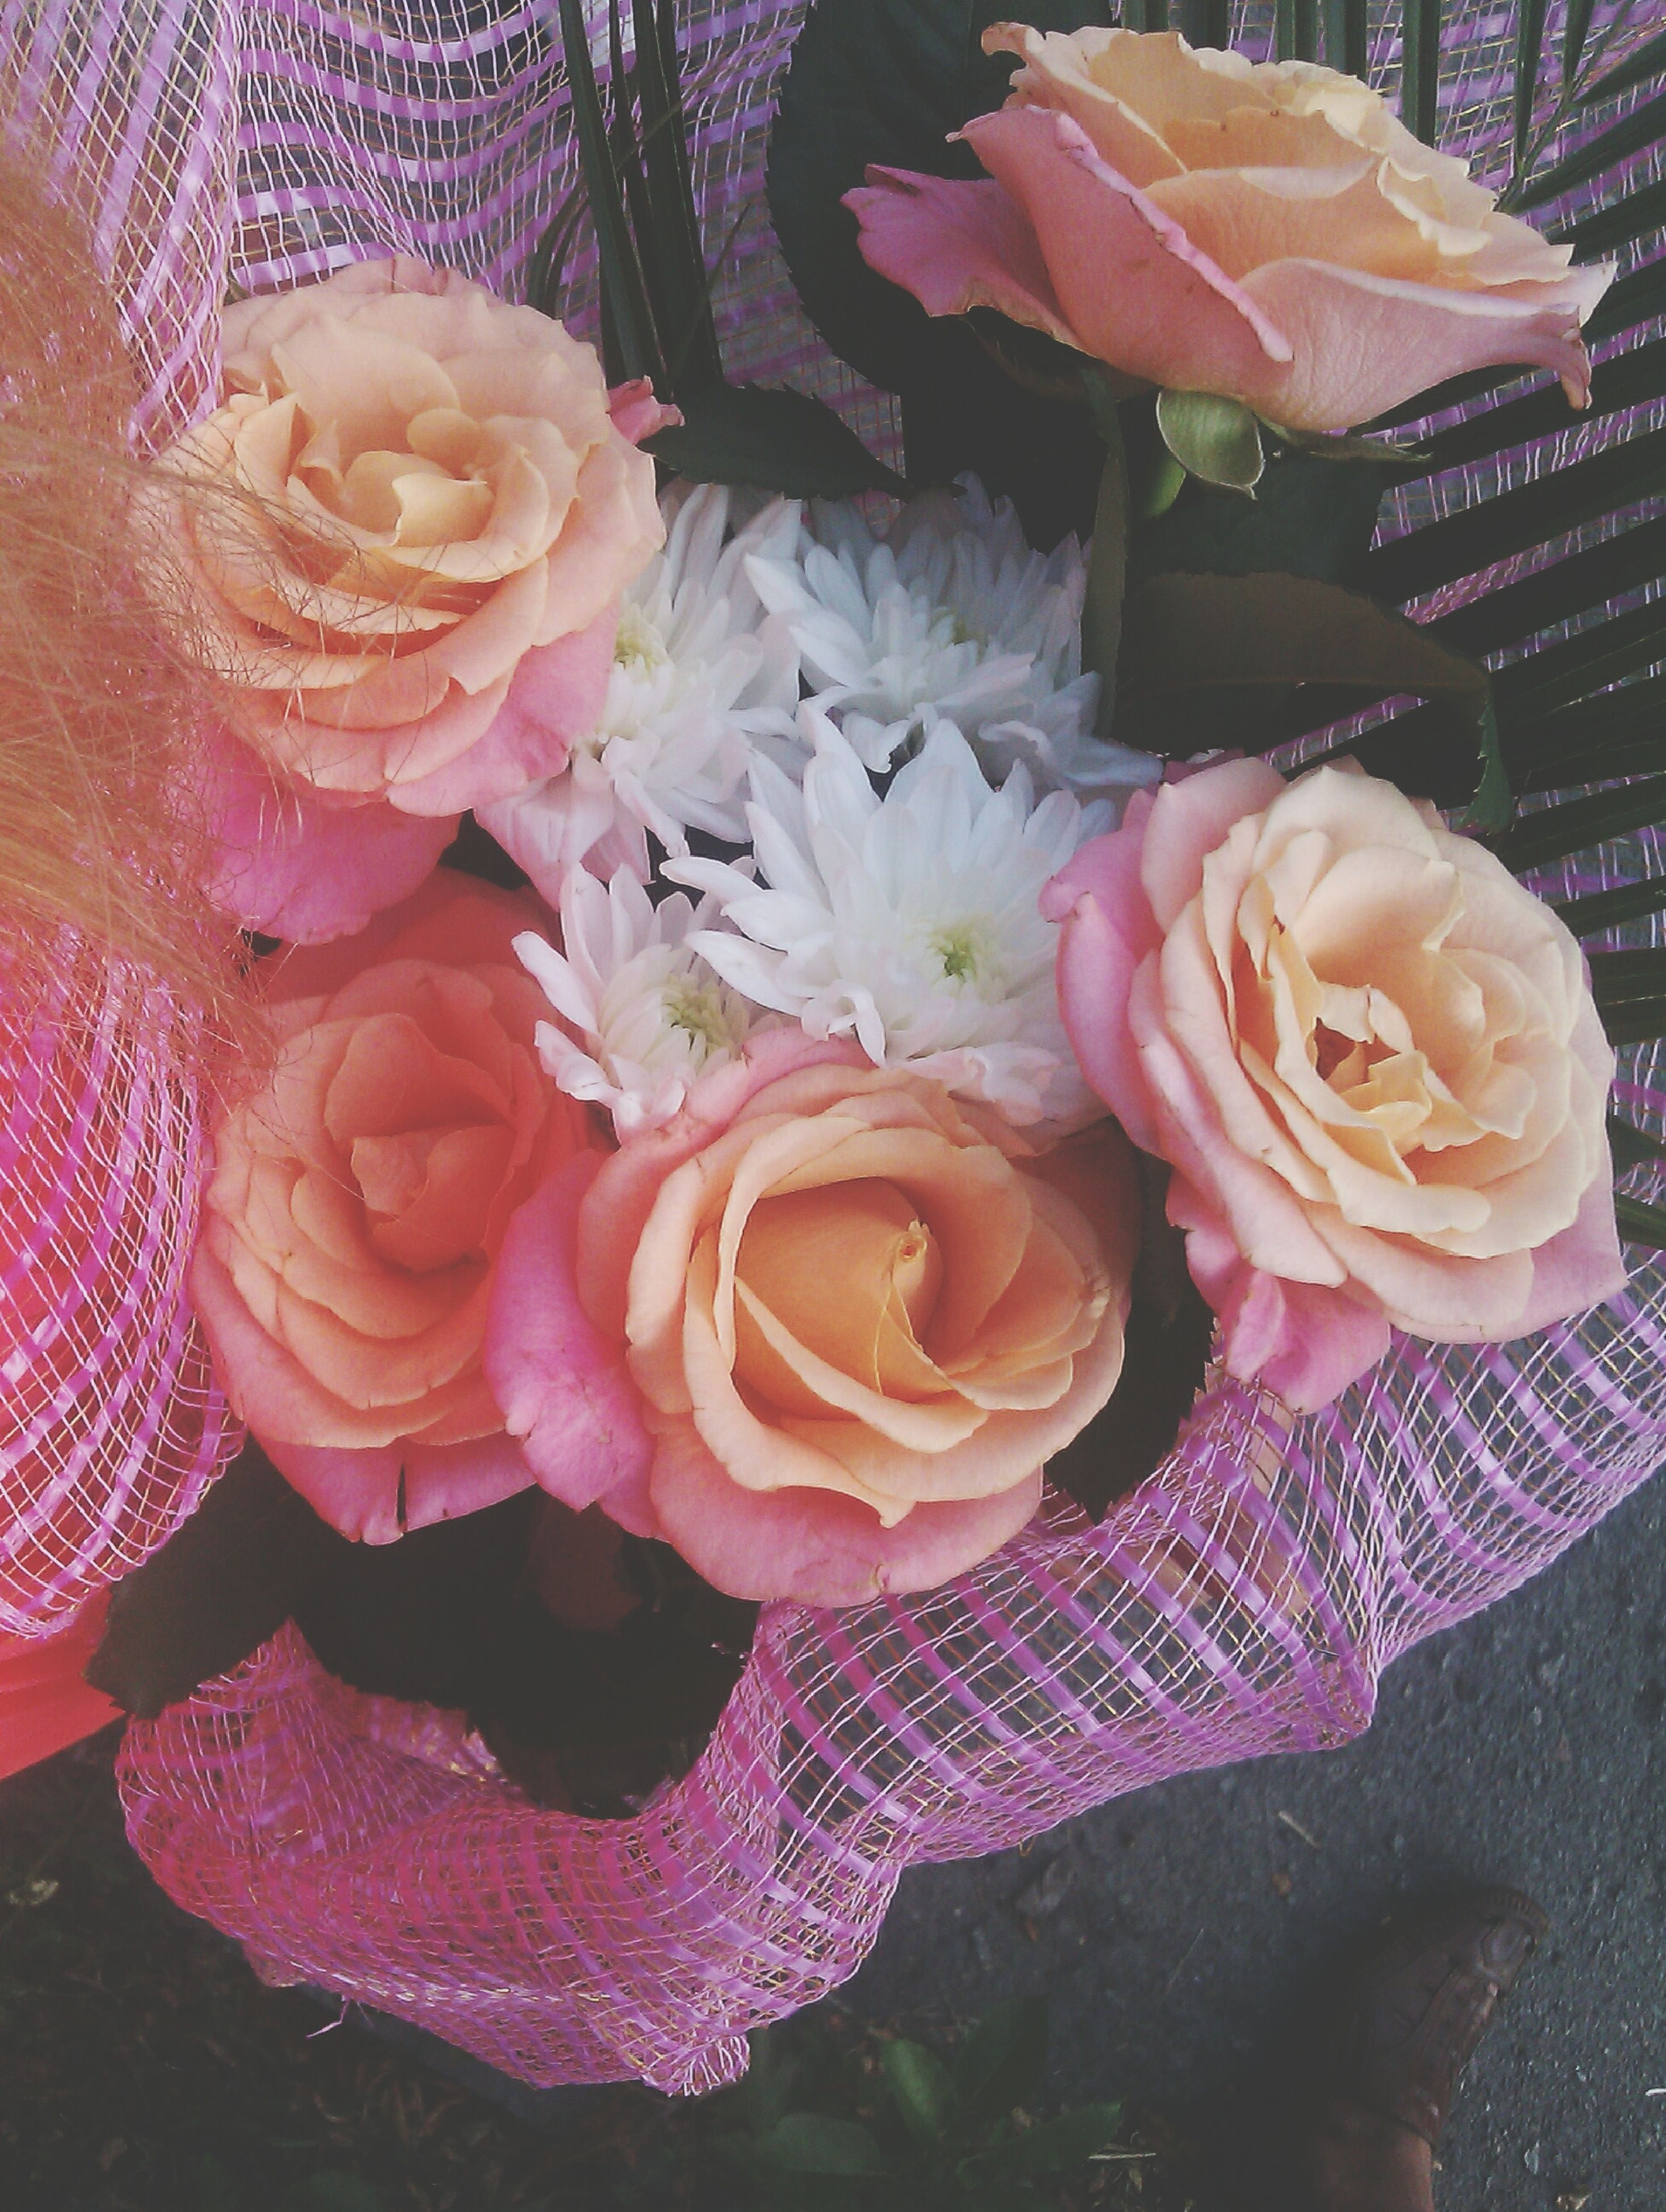 freshness, flower, indoors, rose - flower, sweet food, petal, close-up, dessert, food and drink, high angle view, indulgence, rose, flower head, unhealthy eating, decoration, fragility, table, celebration, bouquet, food